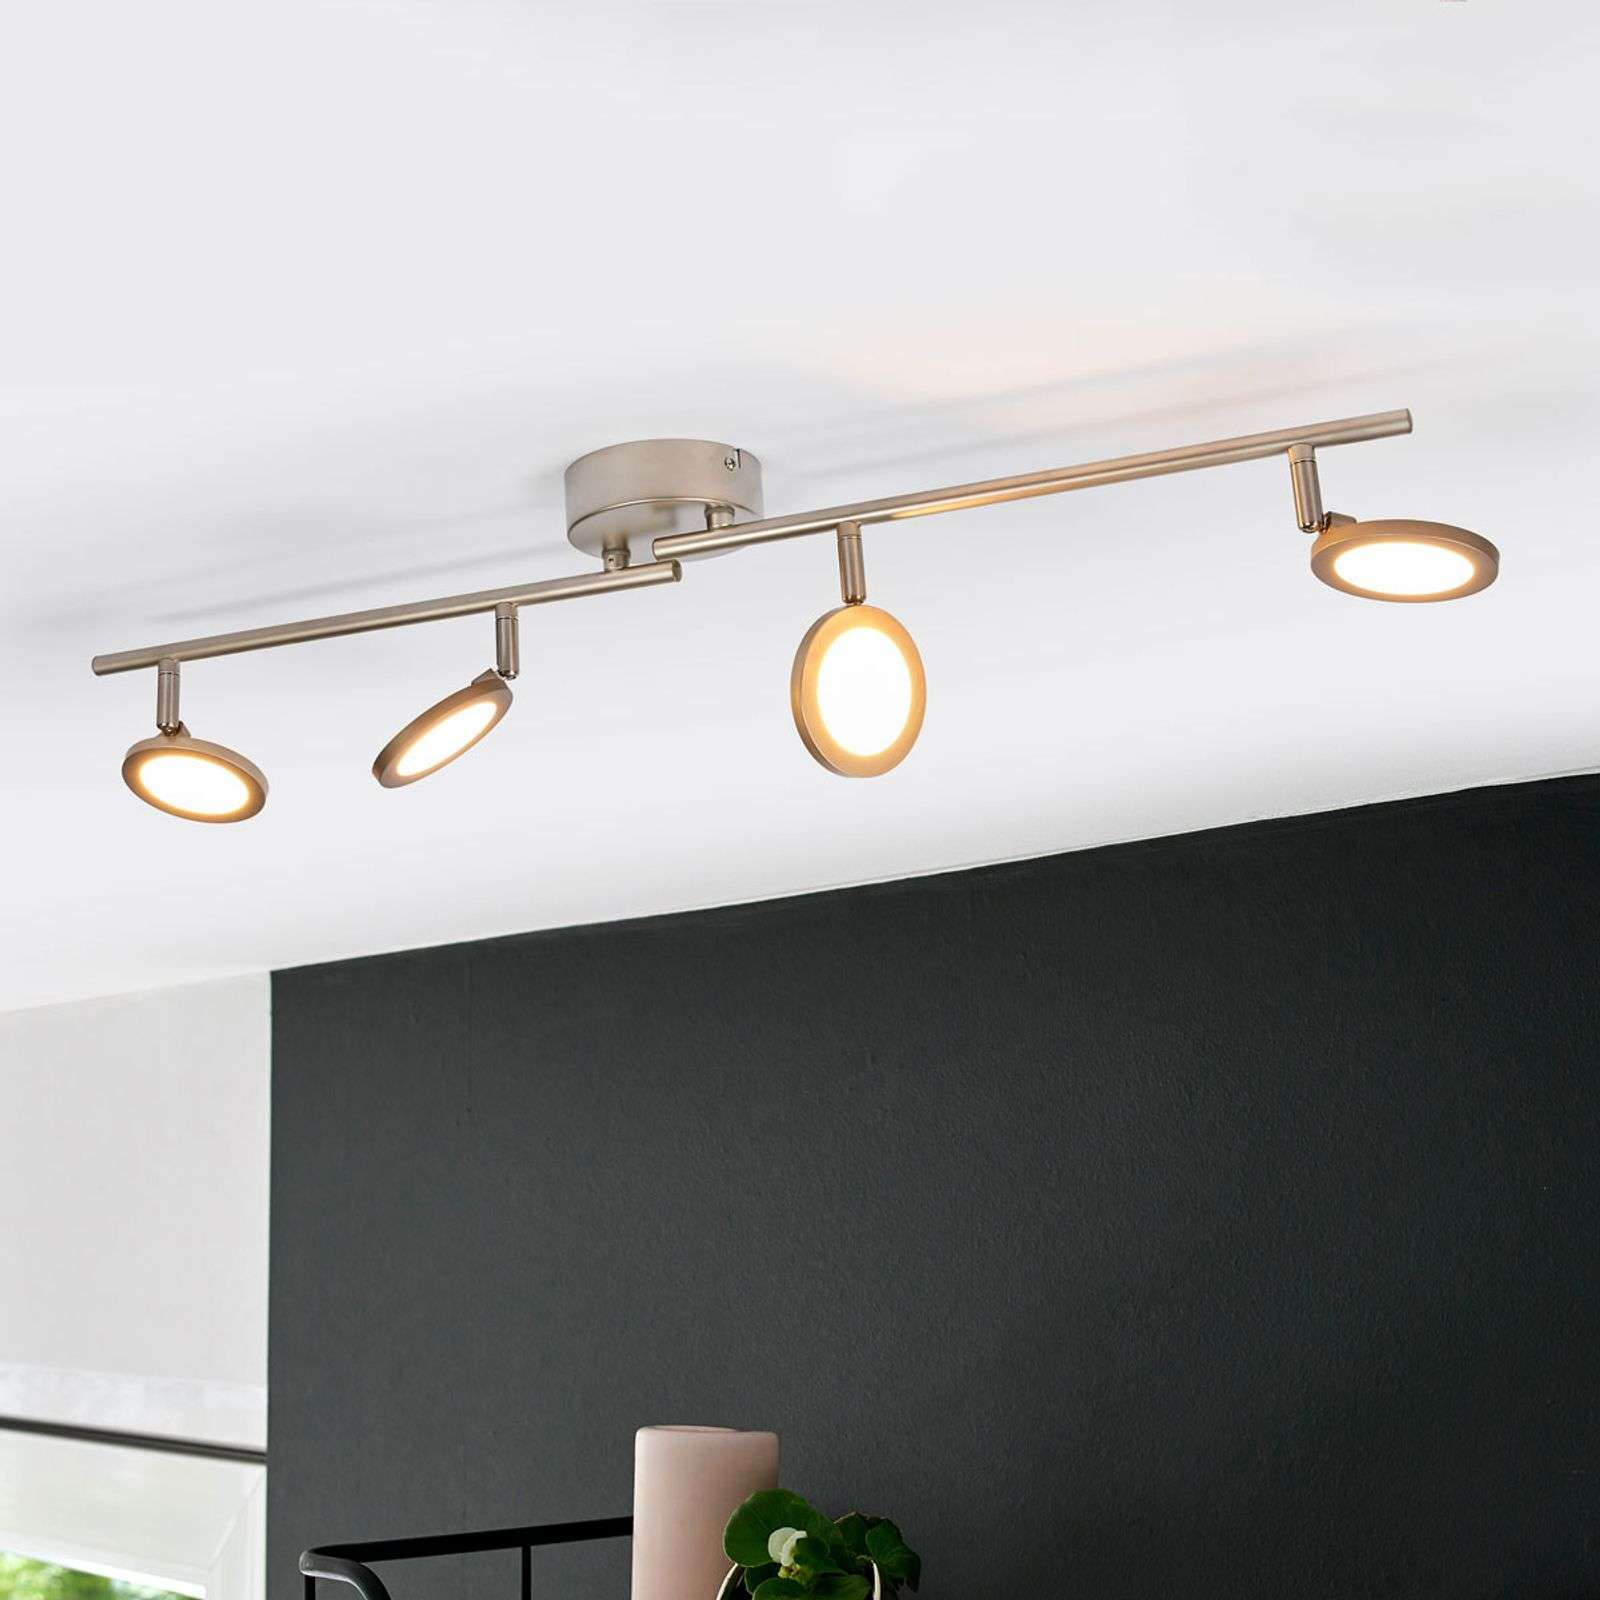 Plafonnier LED couleur nickel Helina, à 4 lampes